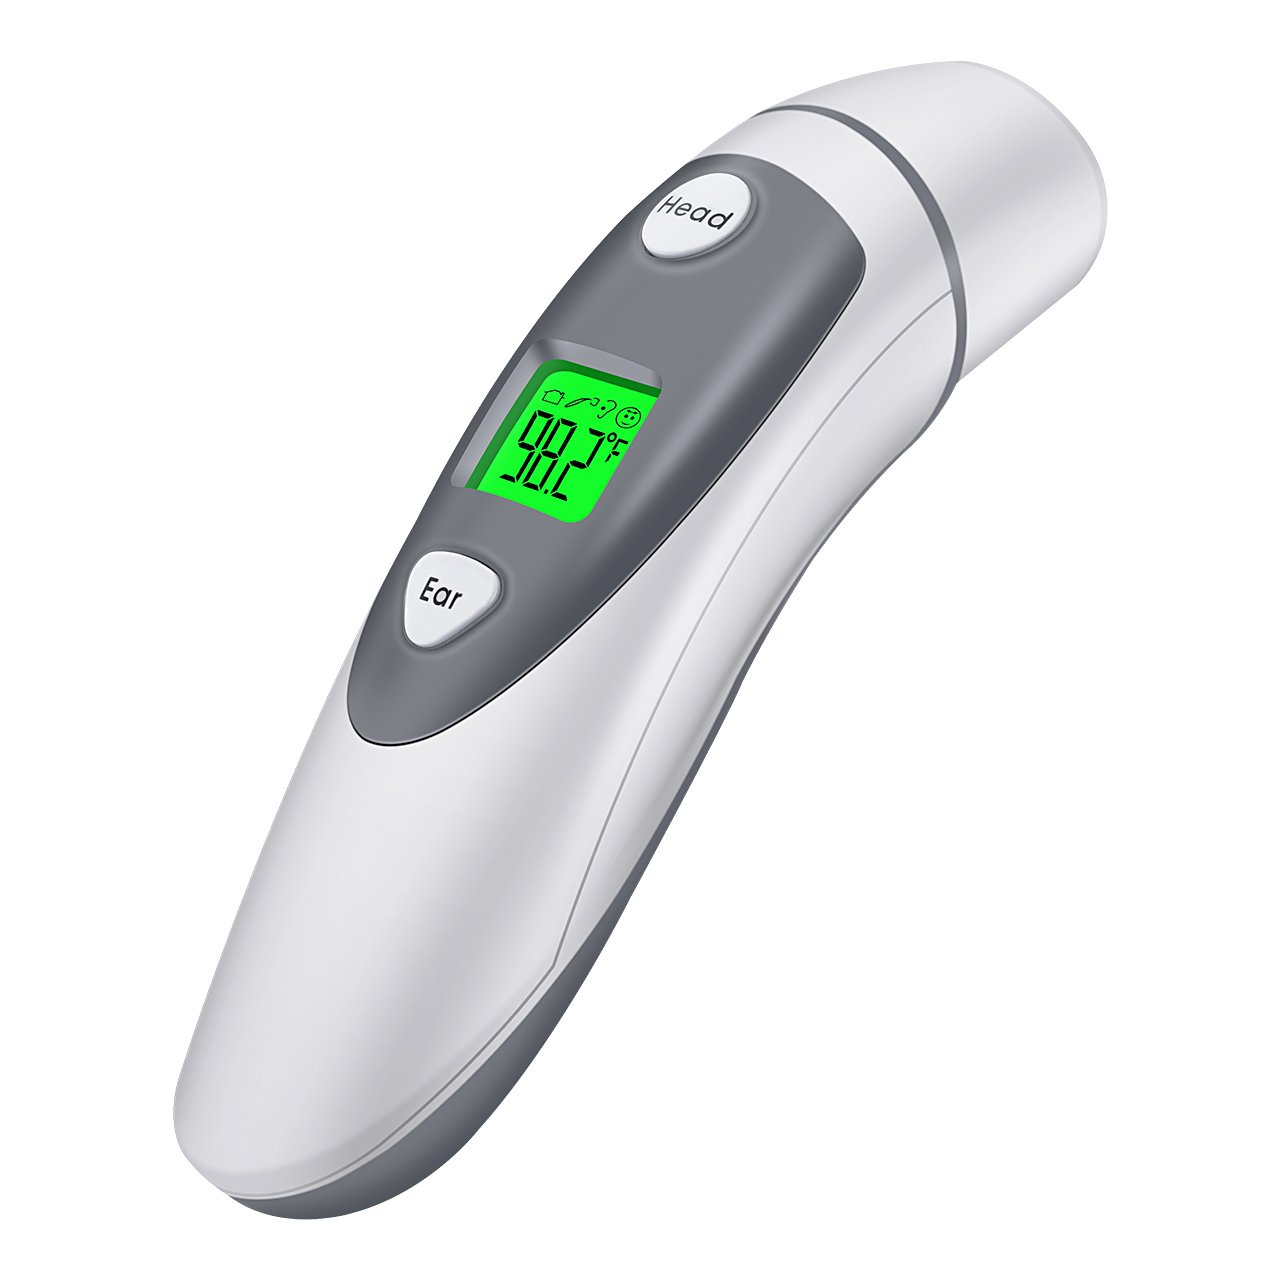 Habor FDA 1 Second Medical Forehead Ear Thermometer Fever Infrared Digital Thermometer Instant and Accurate IR Clinical Thermometer for Baby Infant Adults